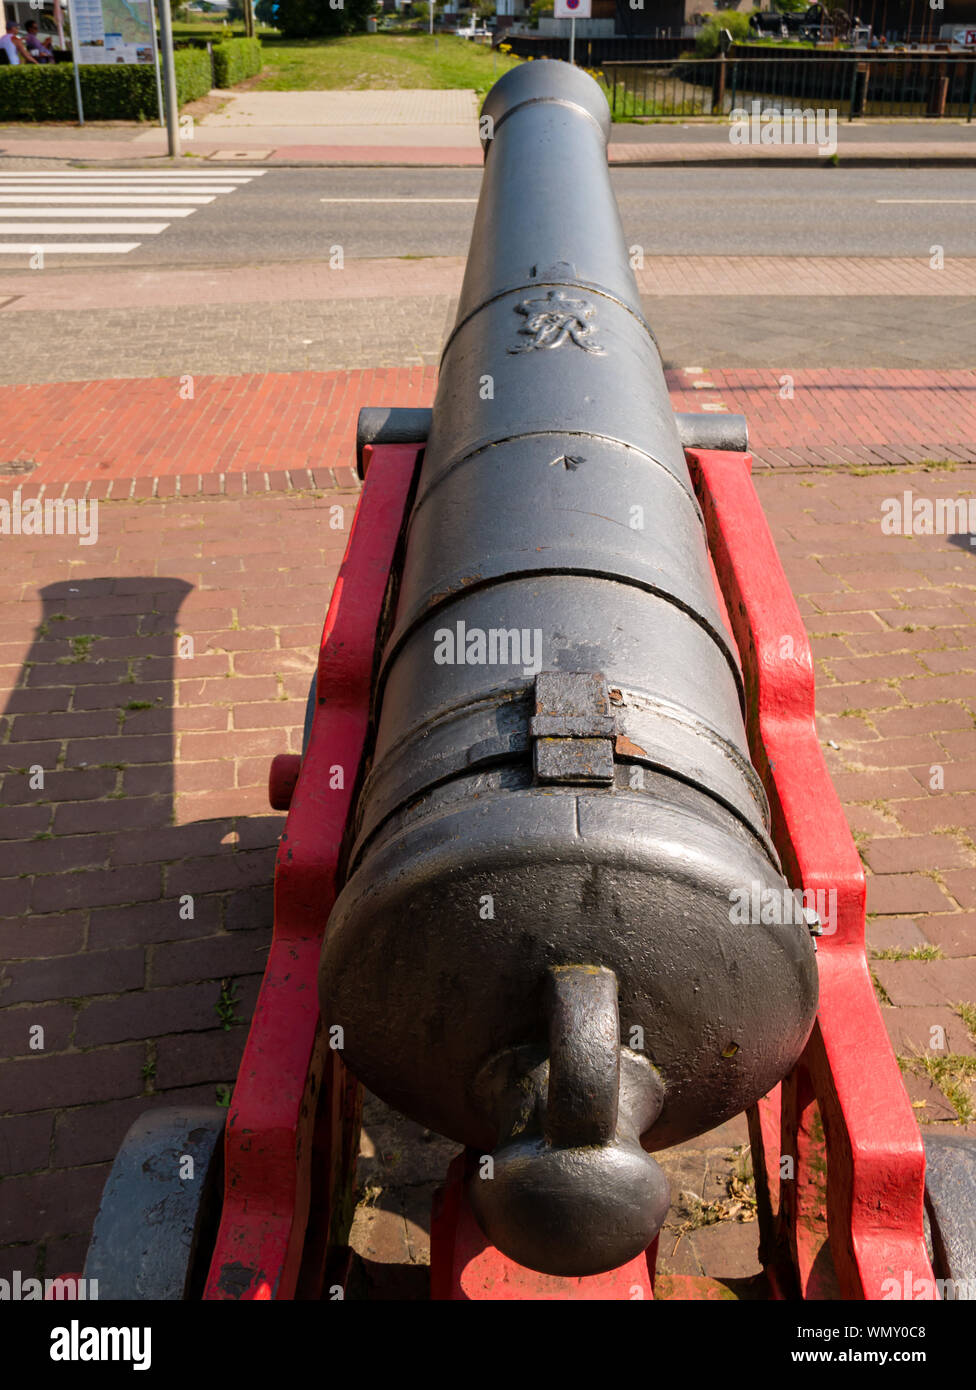 Stade, Germany - August 25, 2019: View at old cannon in front of Swedish Warehouse Museum in historical center of the town of Stade at day. Stock Photo